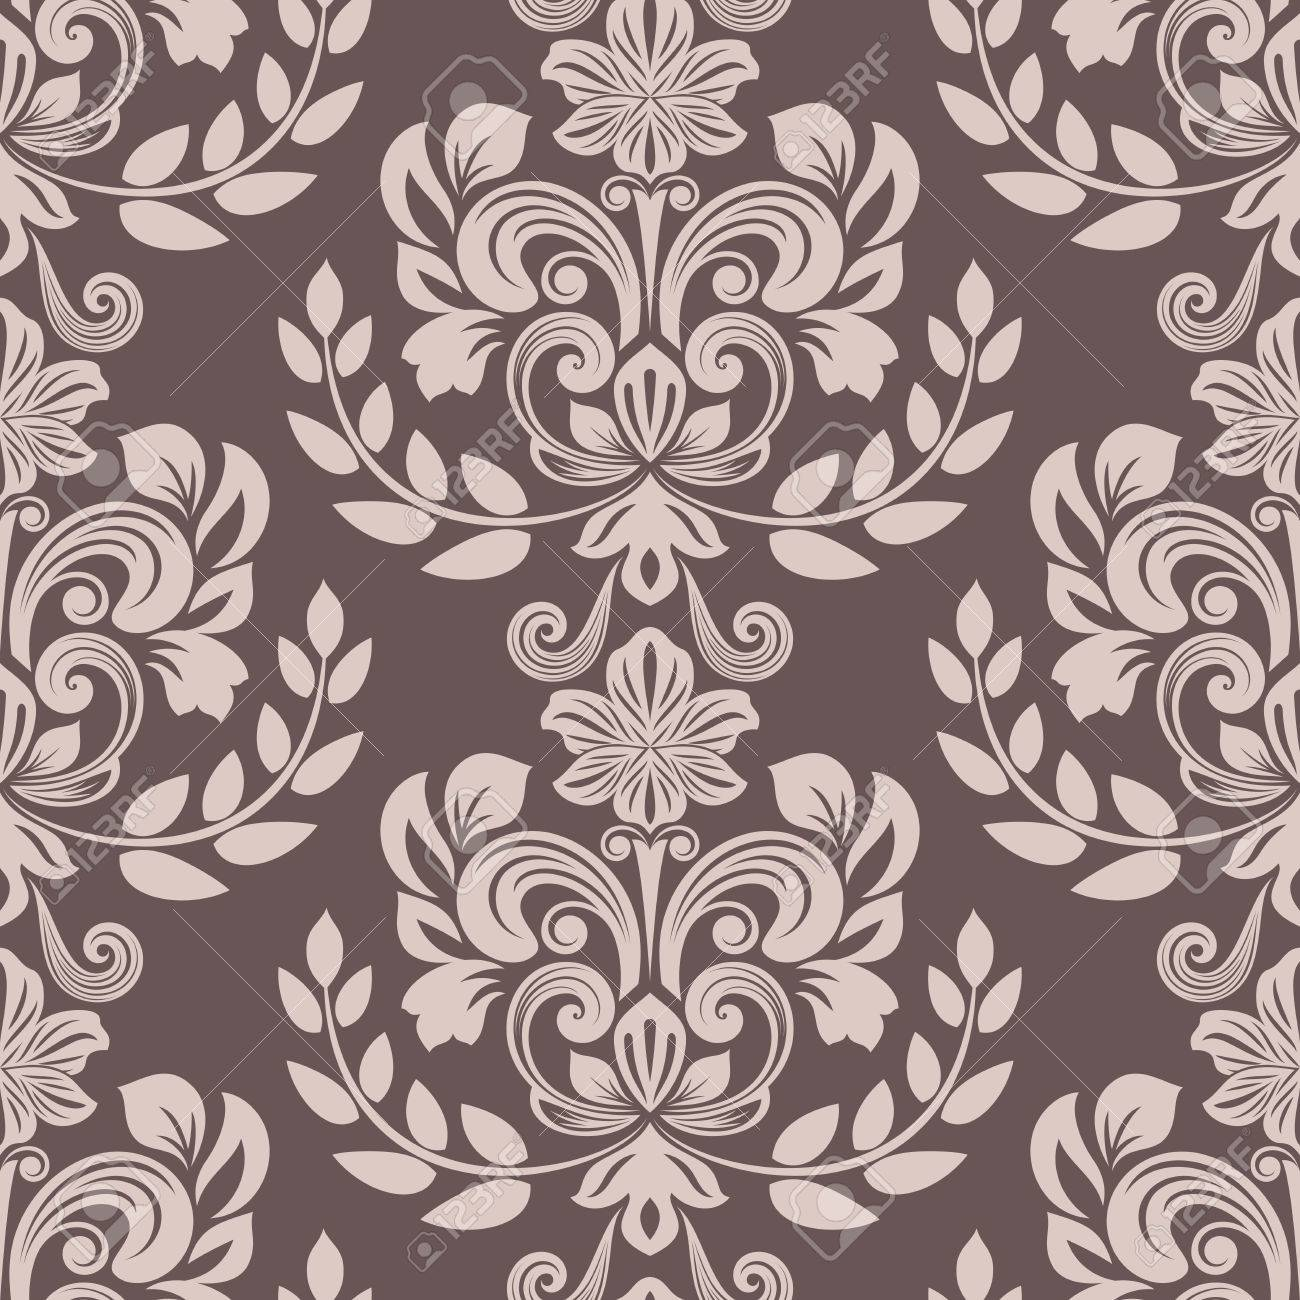 Seamless Brown And Beige Floral Wallpaper Vector Background